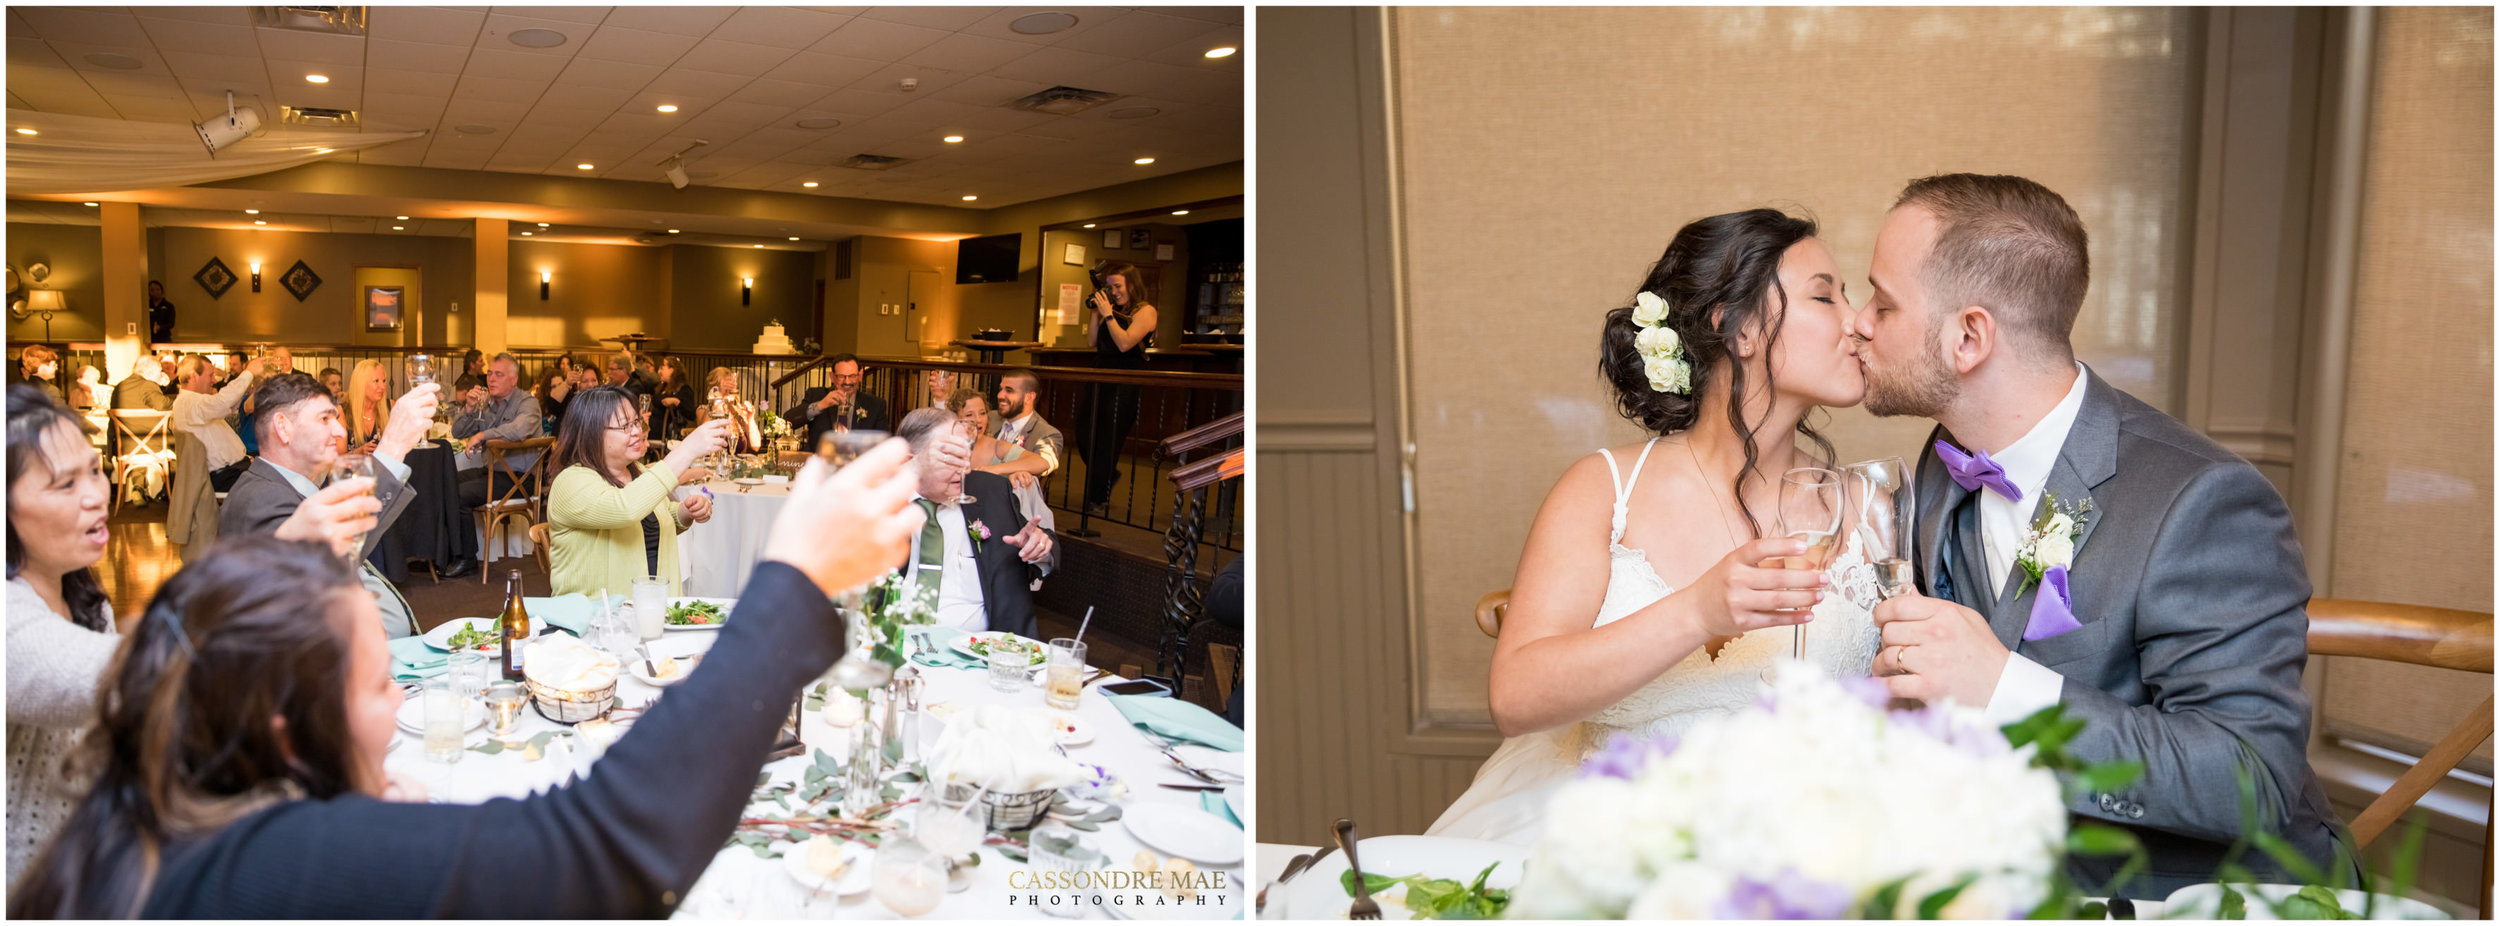 Cassondre Mae Photography Woodloch Resort Wedding 36.jpg